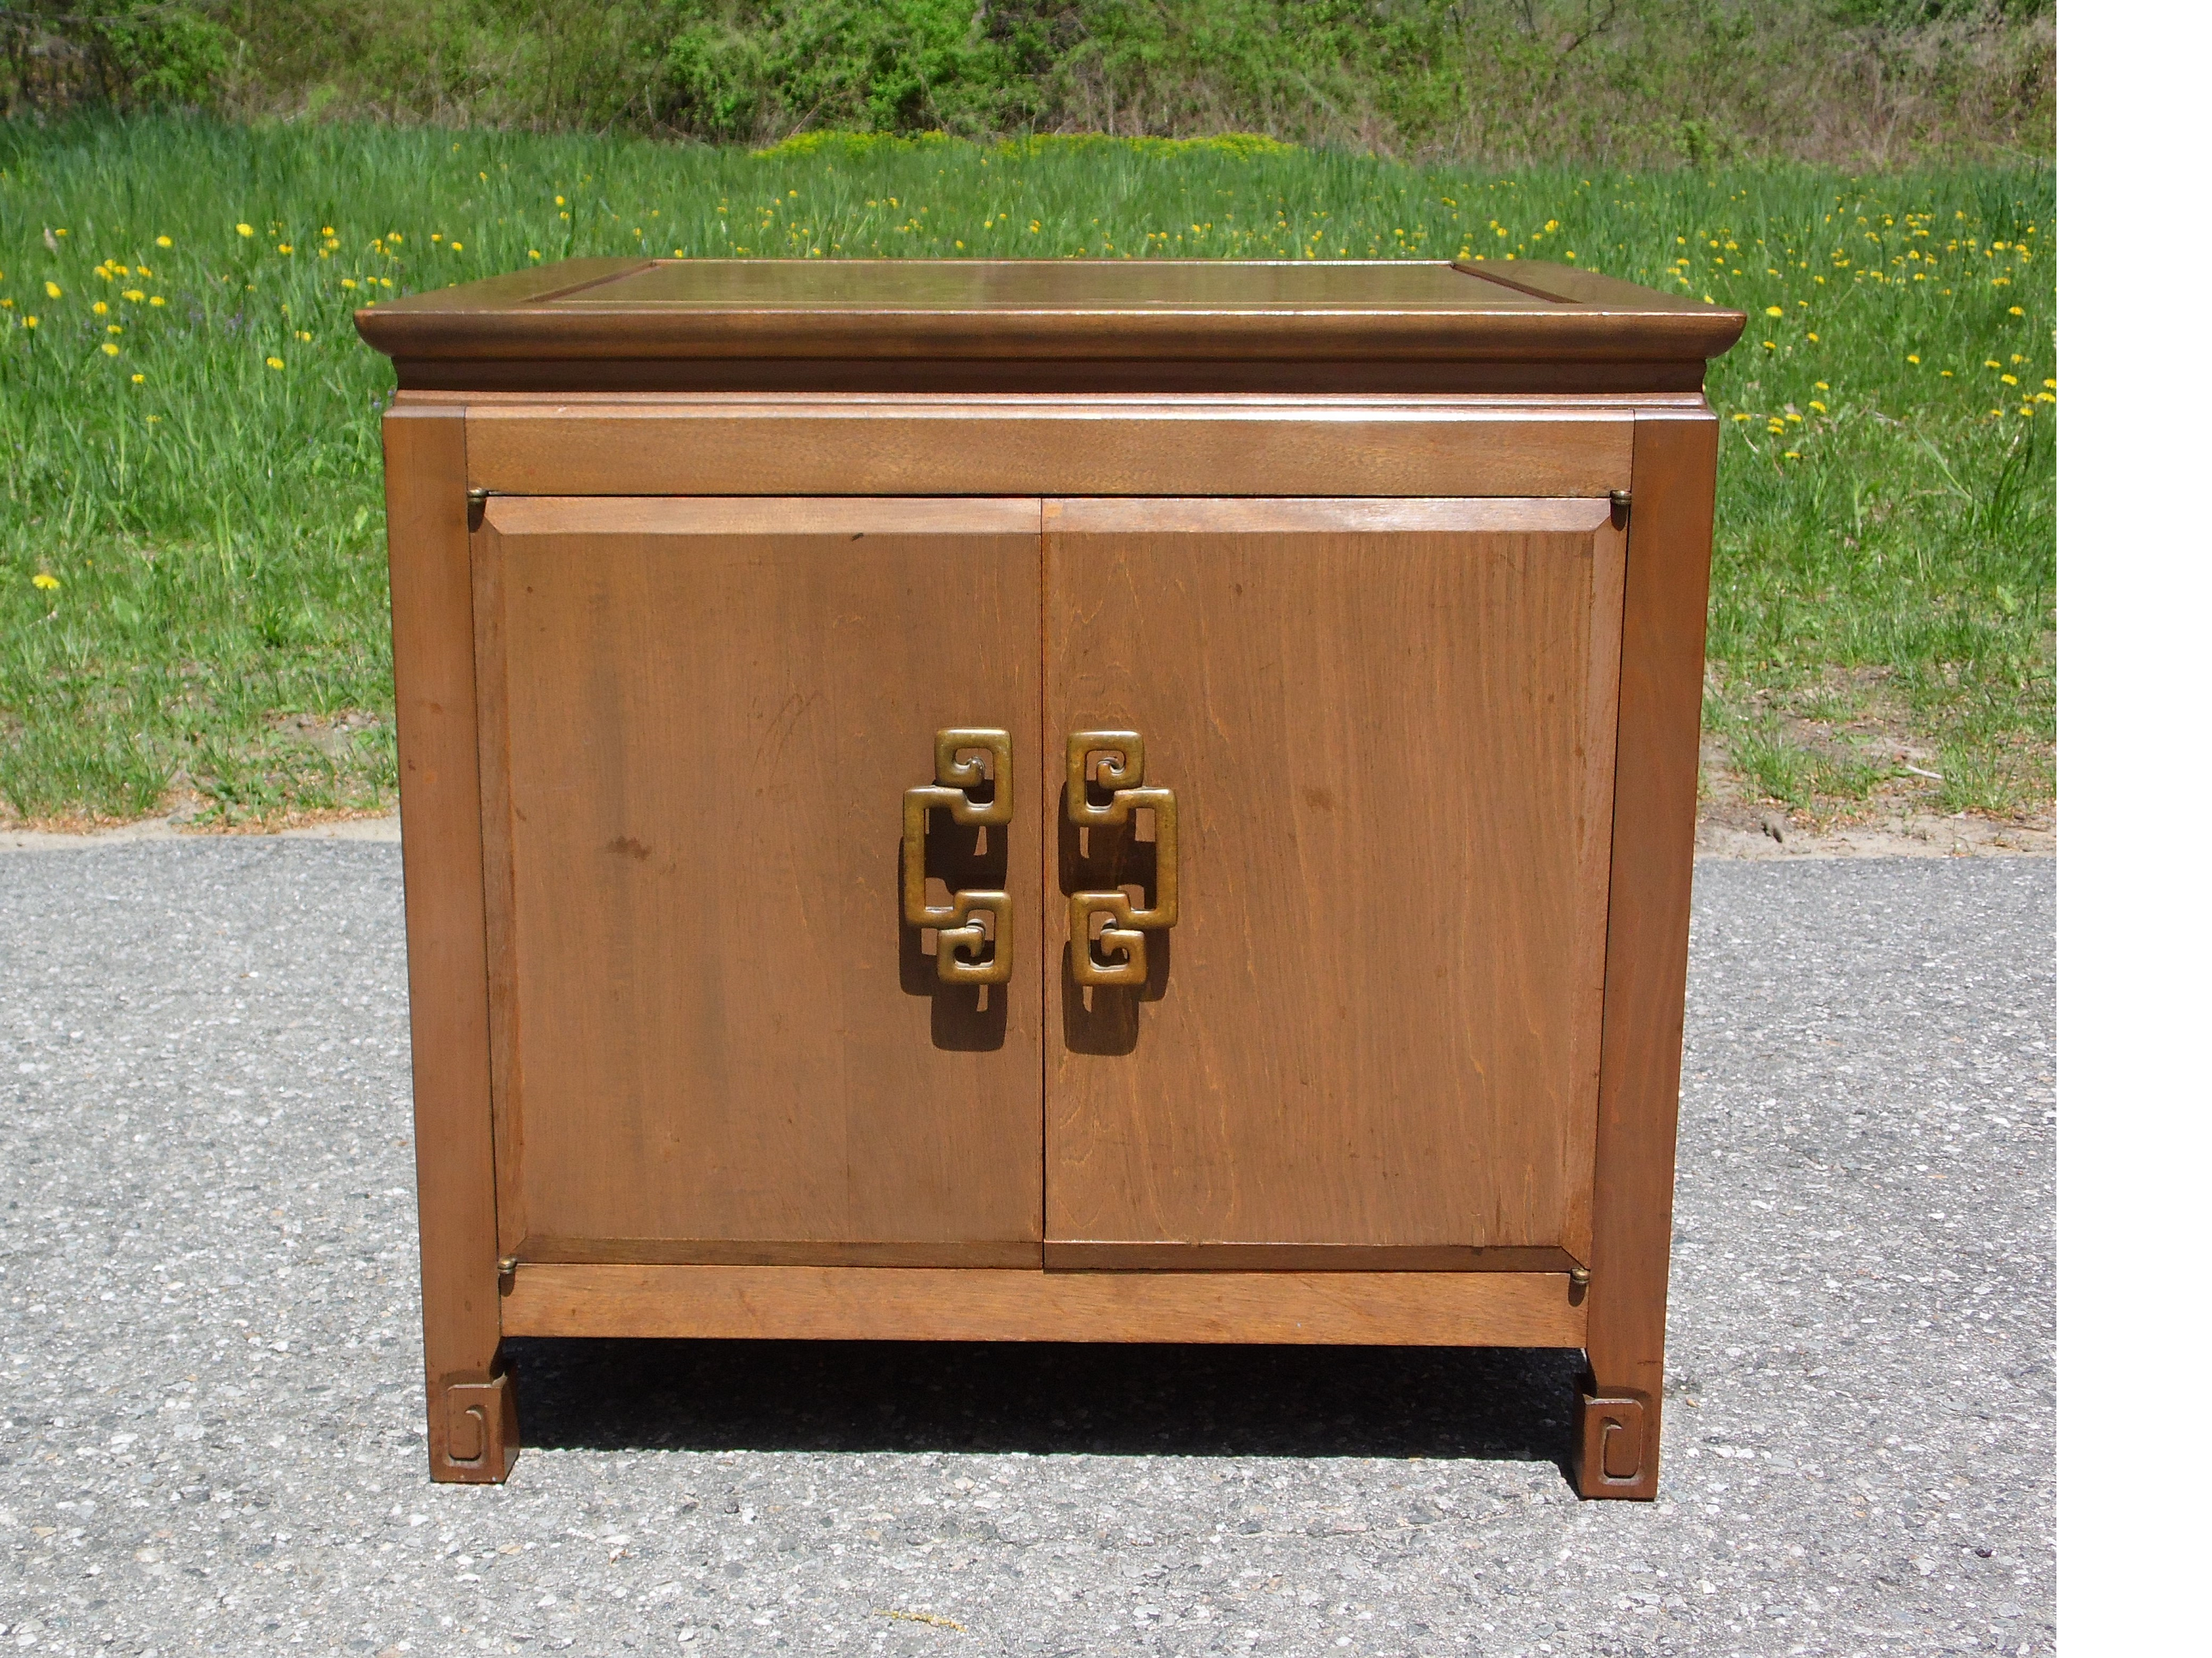 Regency Style Petite Compact Cabinet Mini Credenza Chest Storage Unit